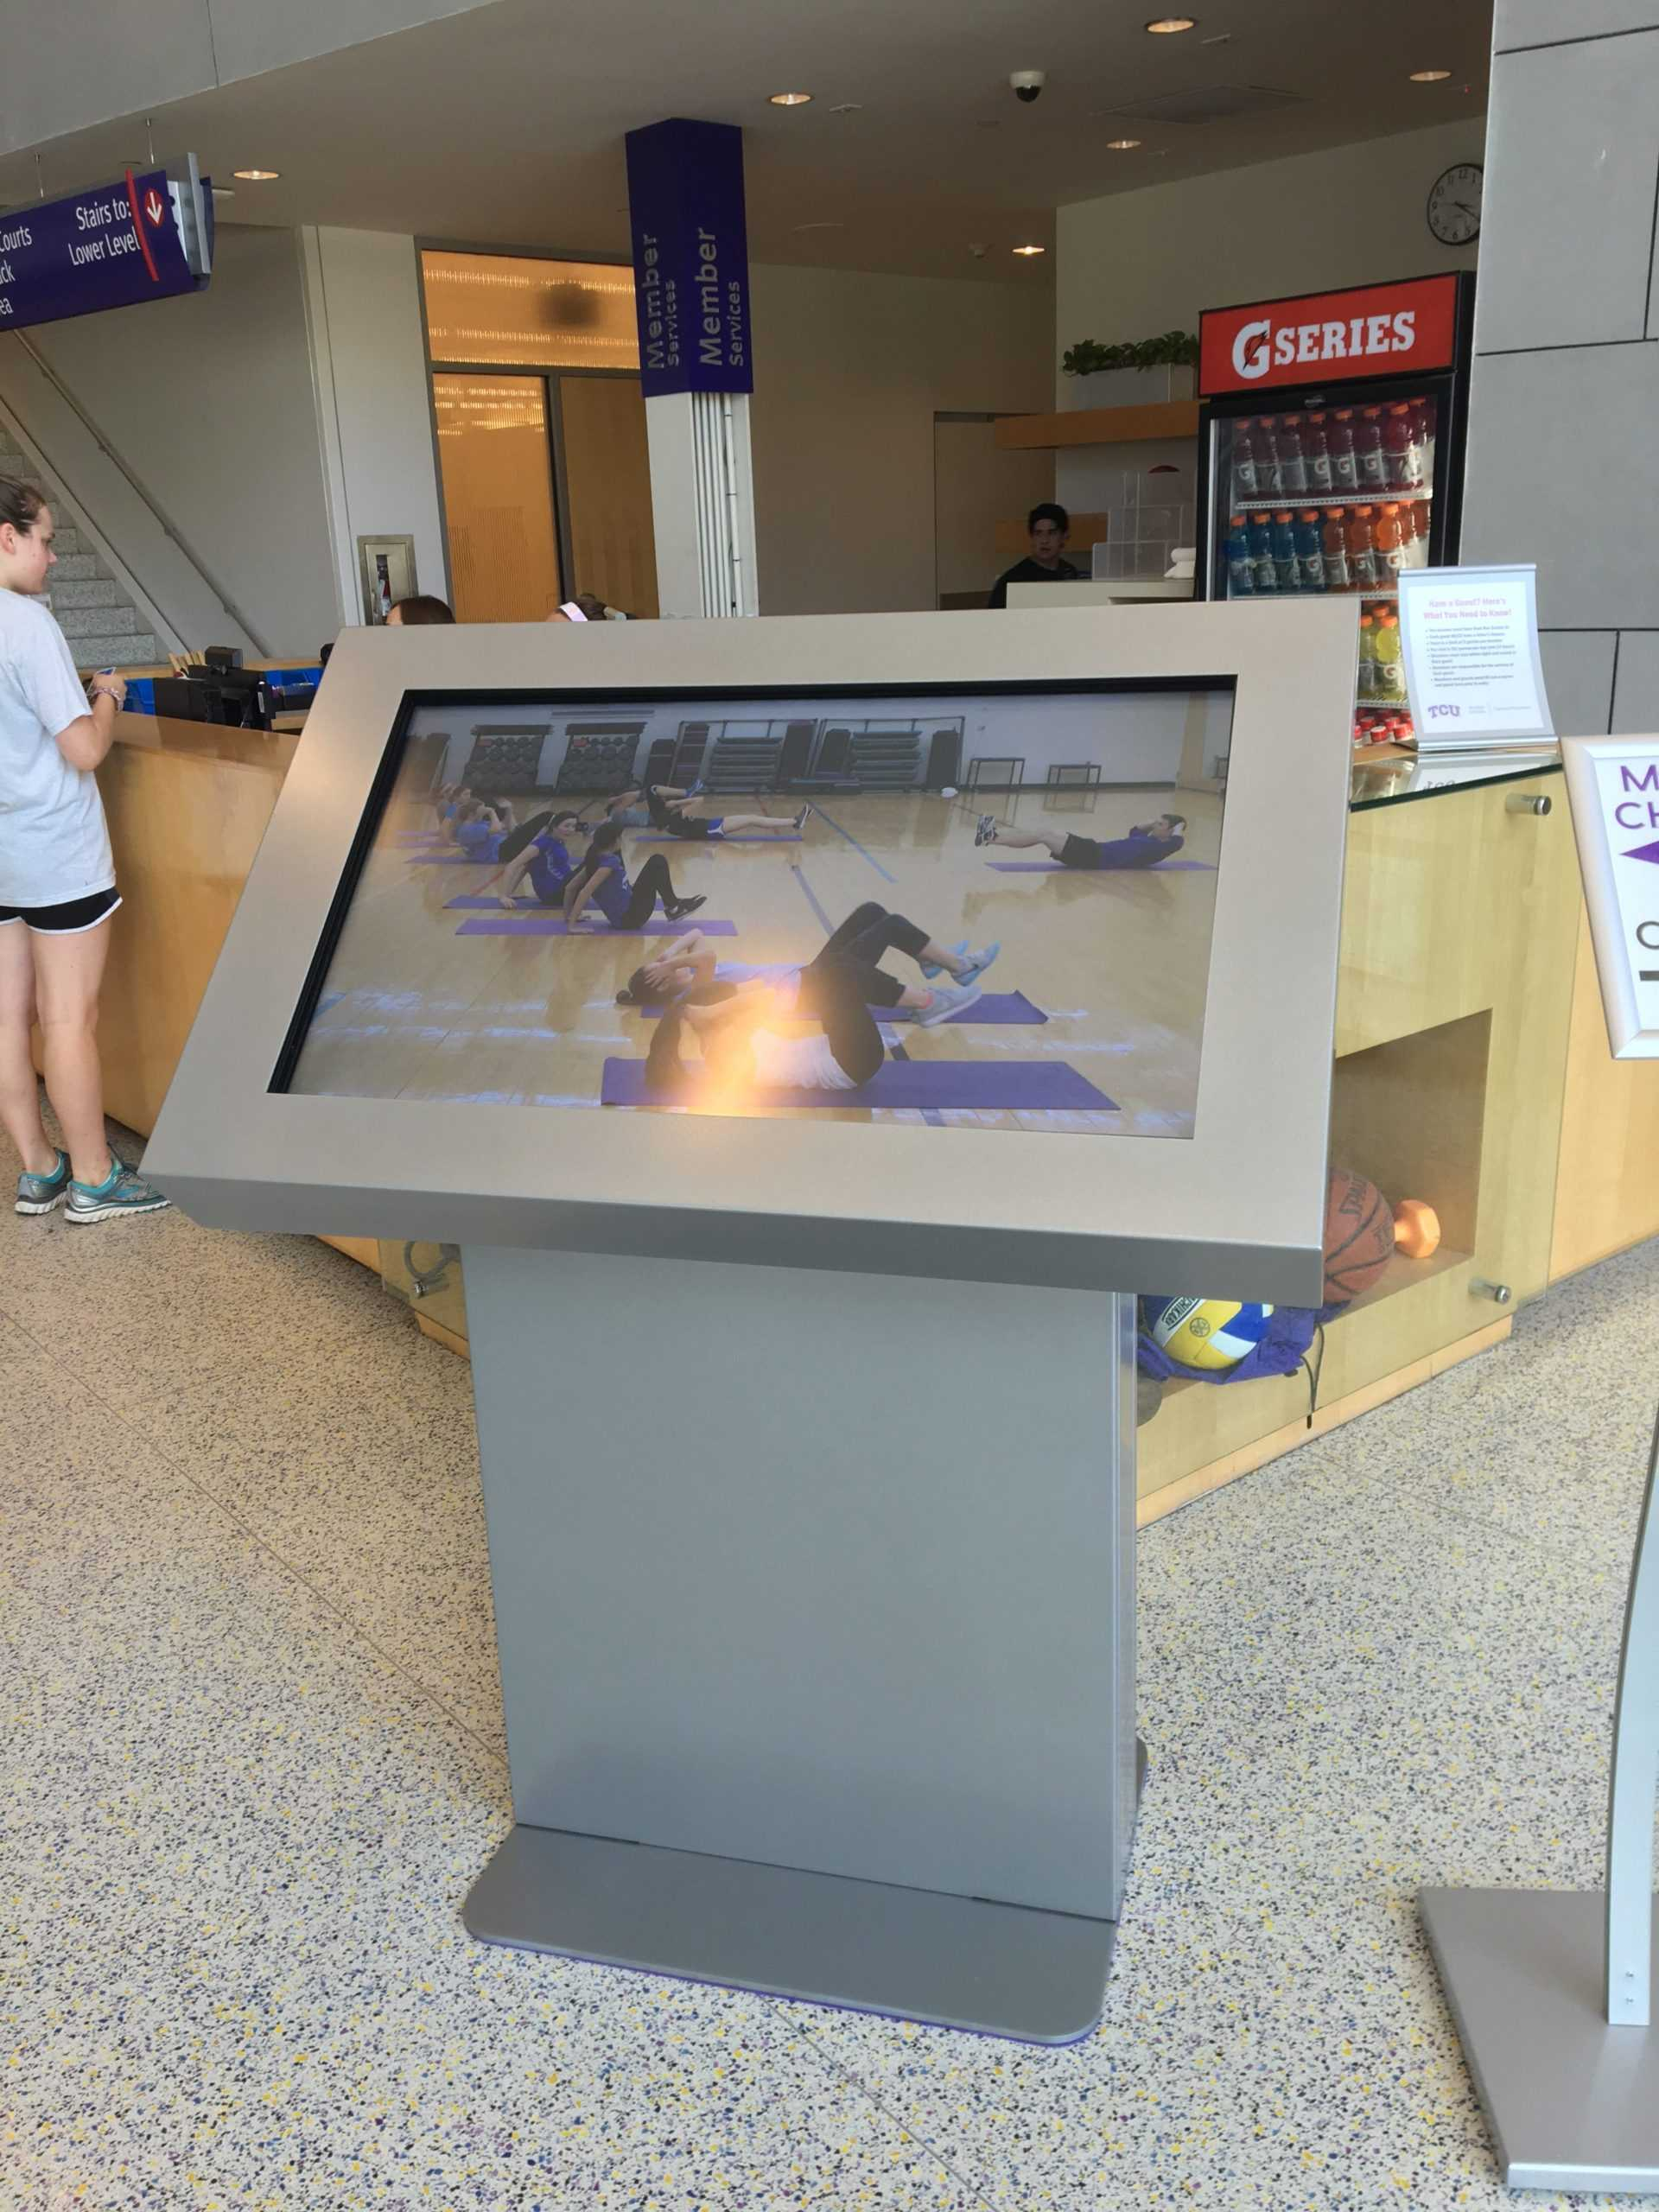 A new interactive screen can be found at the entrance of the rec center. More will be installed by the end of the month.